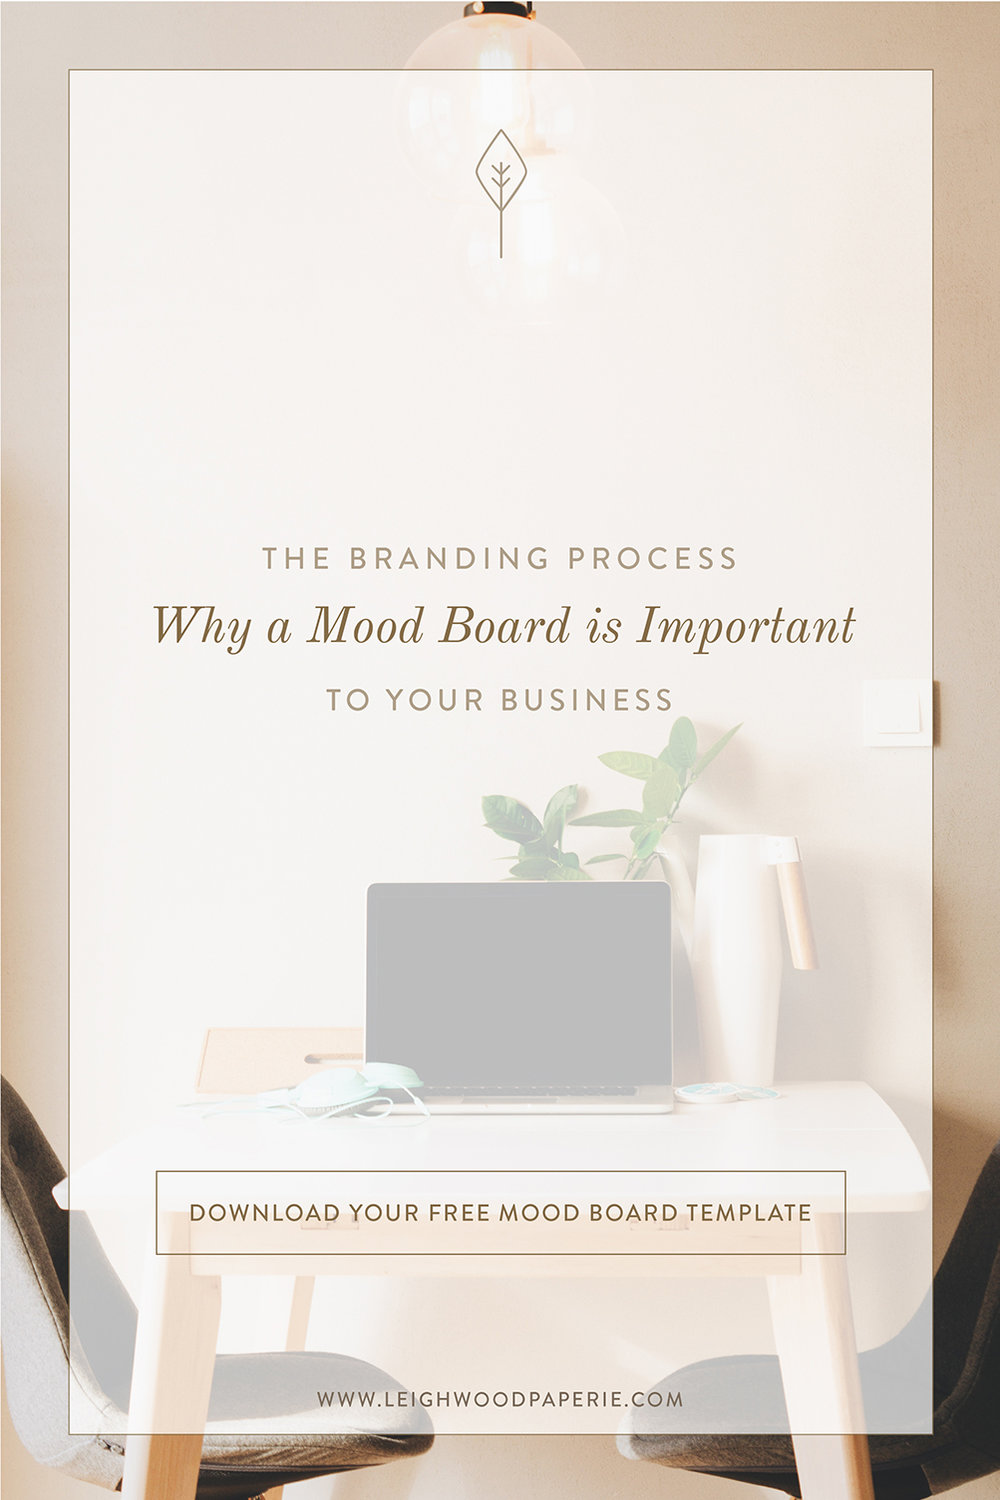 Leighwood Paperie >> The Branding Process: Why a mood board is important to your business